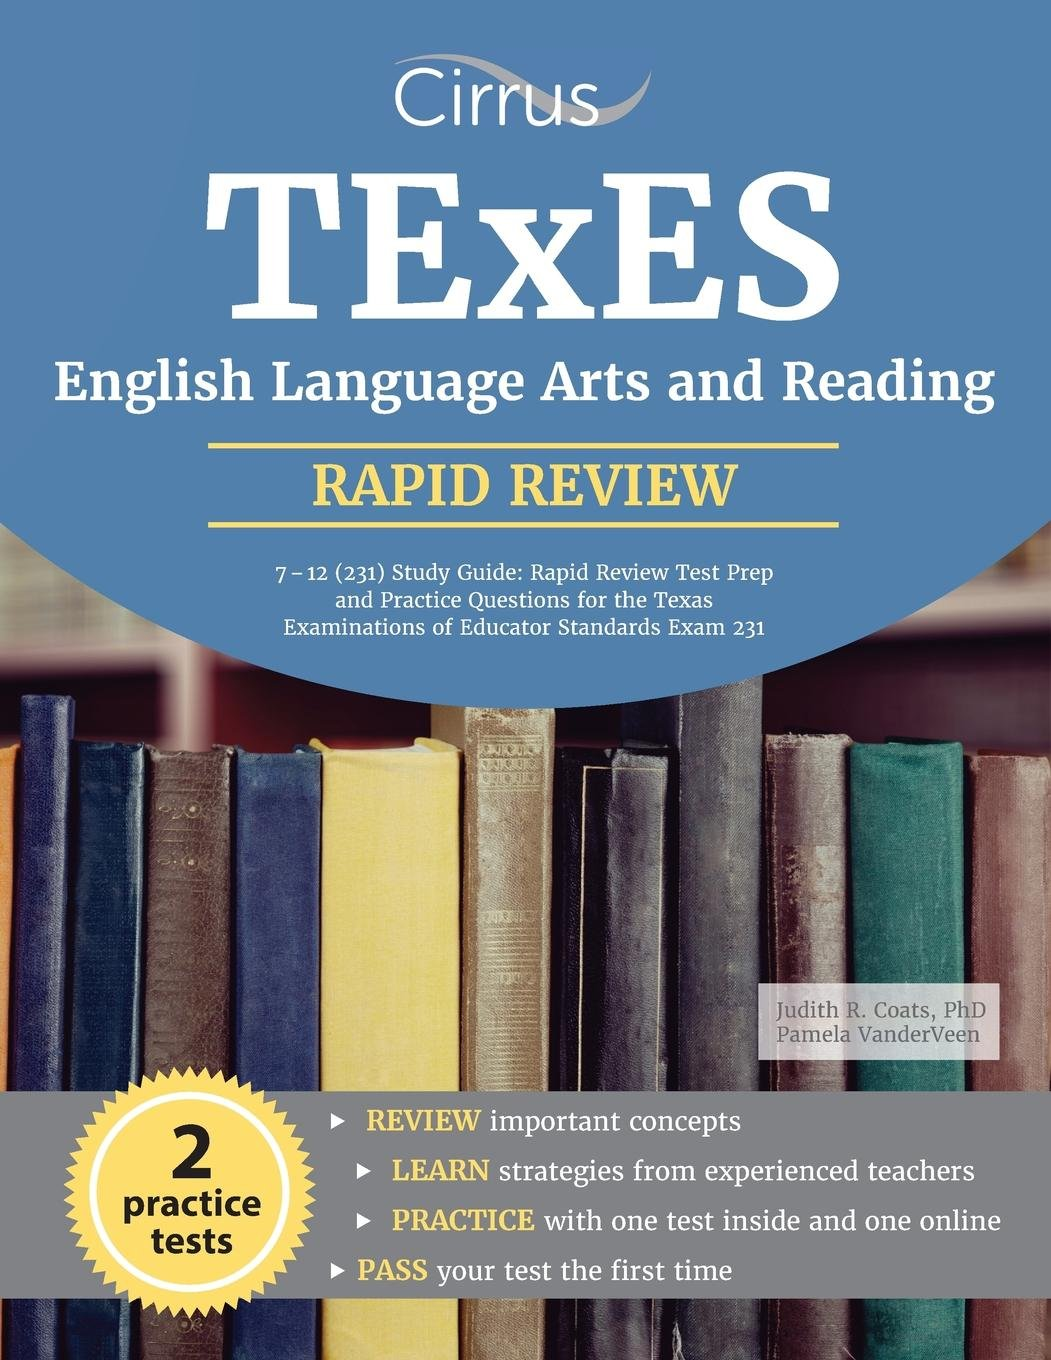 Download TExES English Language Arts and Reading 7-12 (231) Study Guide: Rapid Review Test Prep and Practice Questions for the Texas Examinations of Educator Standards Exam 231 PDF